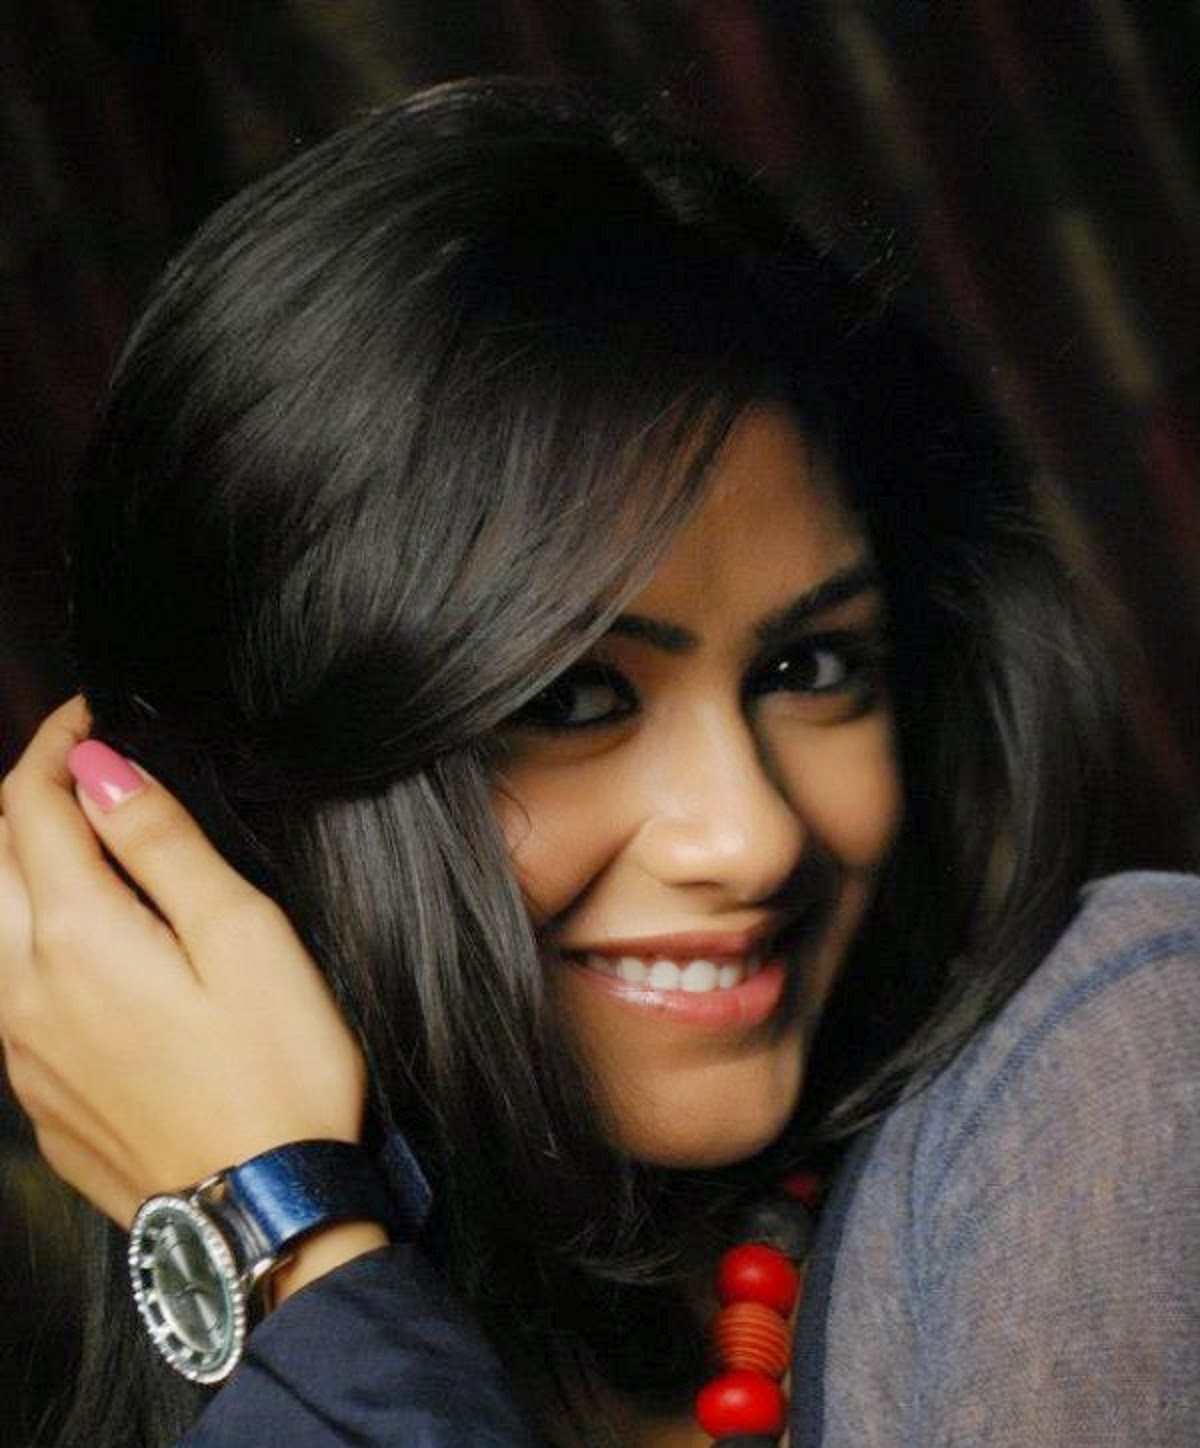 Sultan Actress Update: The Lead Female actor for Salman Khan's Sultan may be Kumkum Bhagya fame Mrunal Thakur